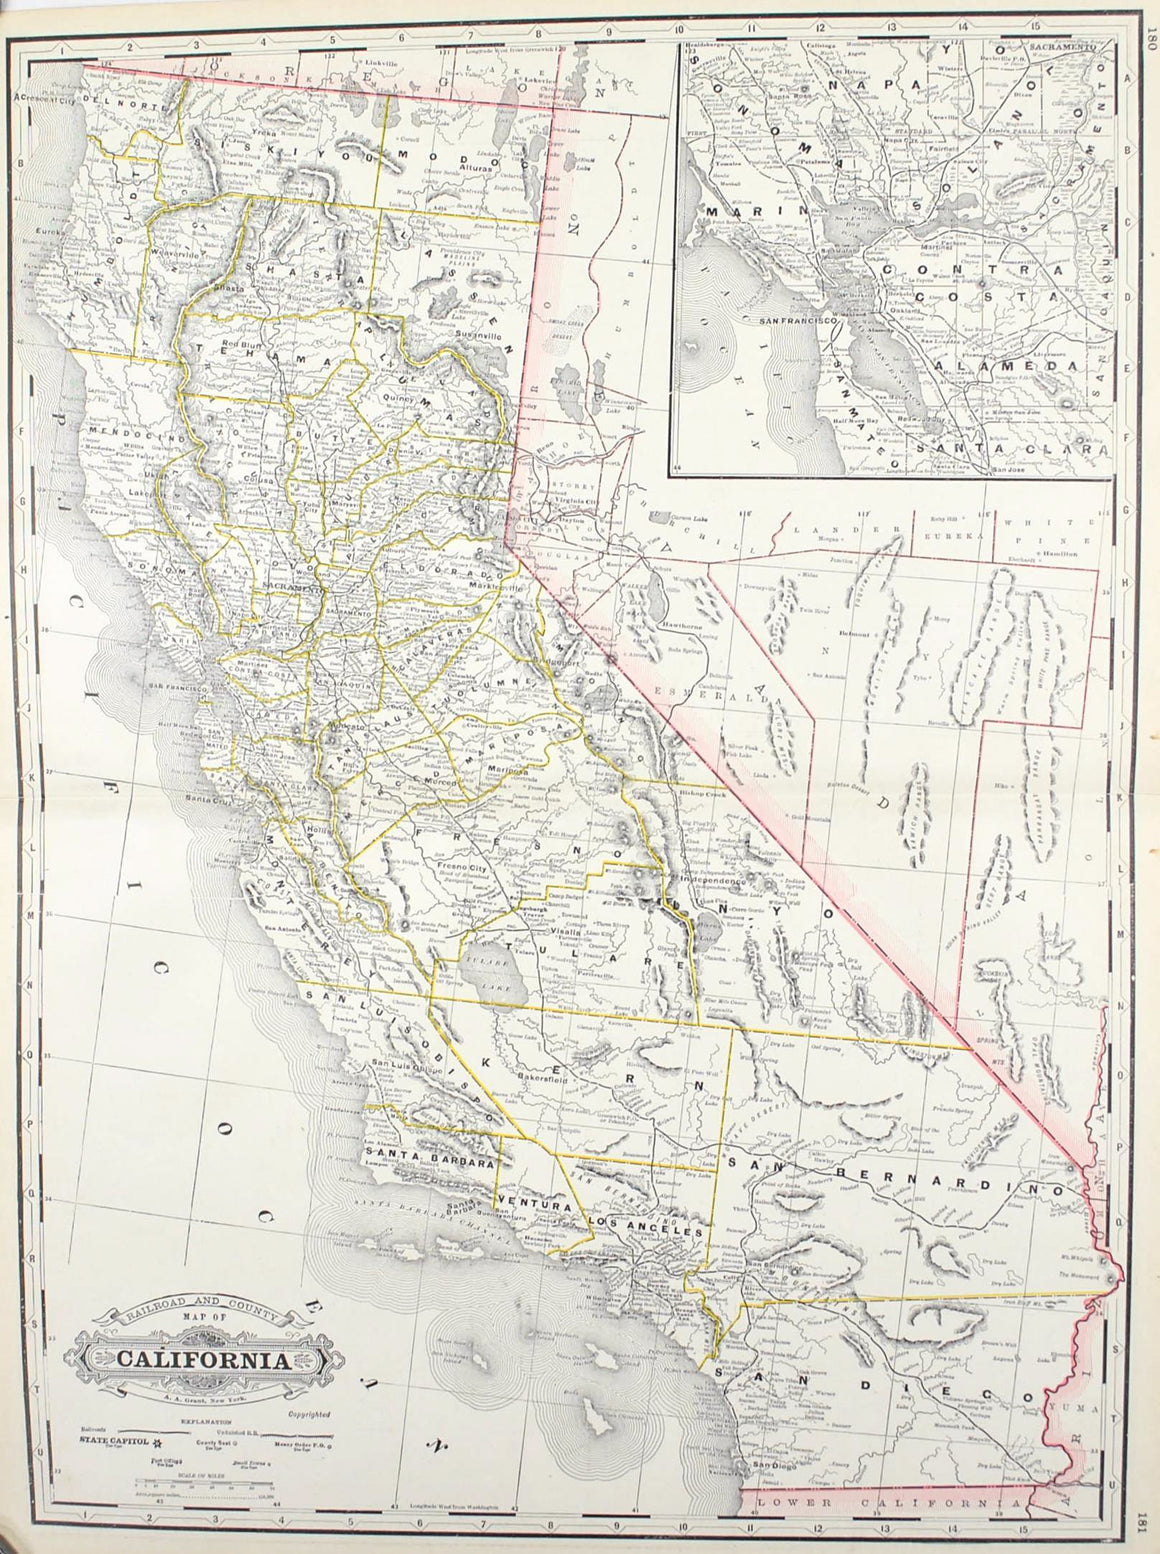 1887 Railroad and County Map of California